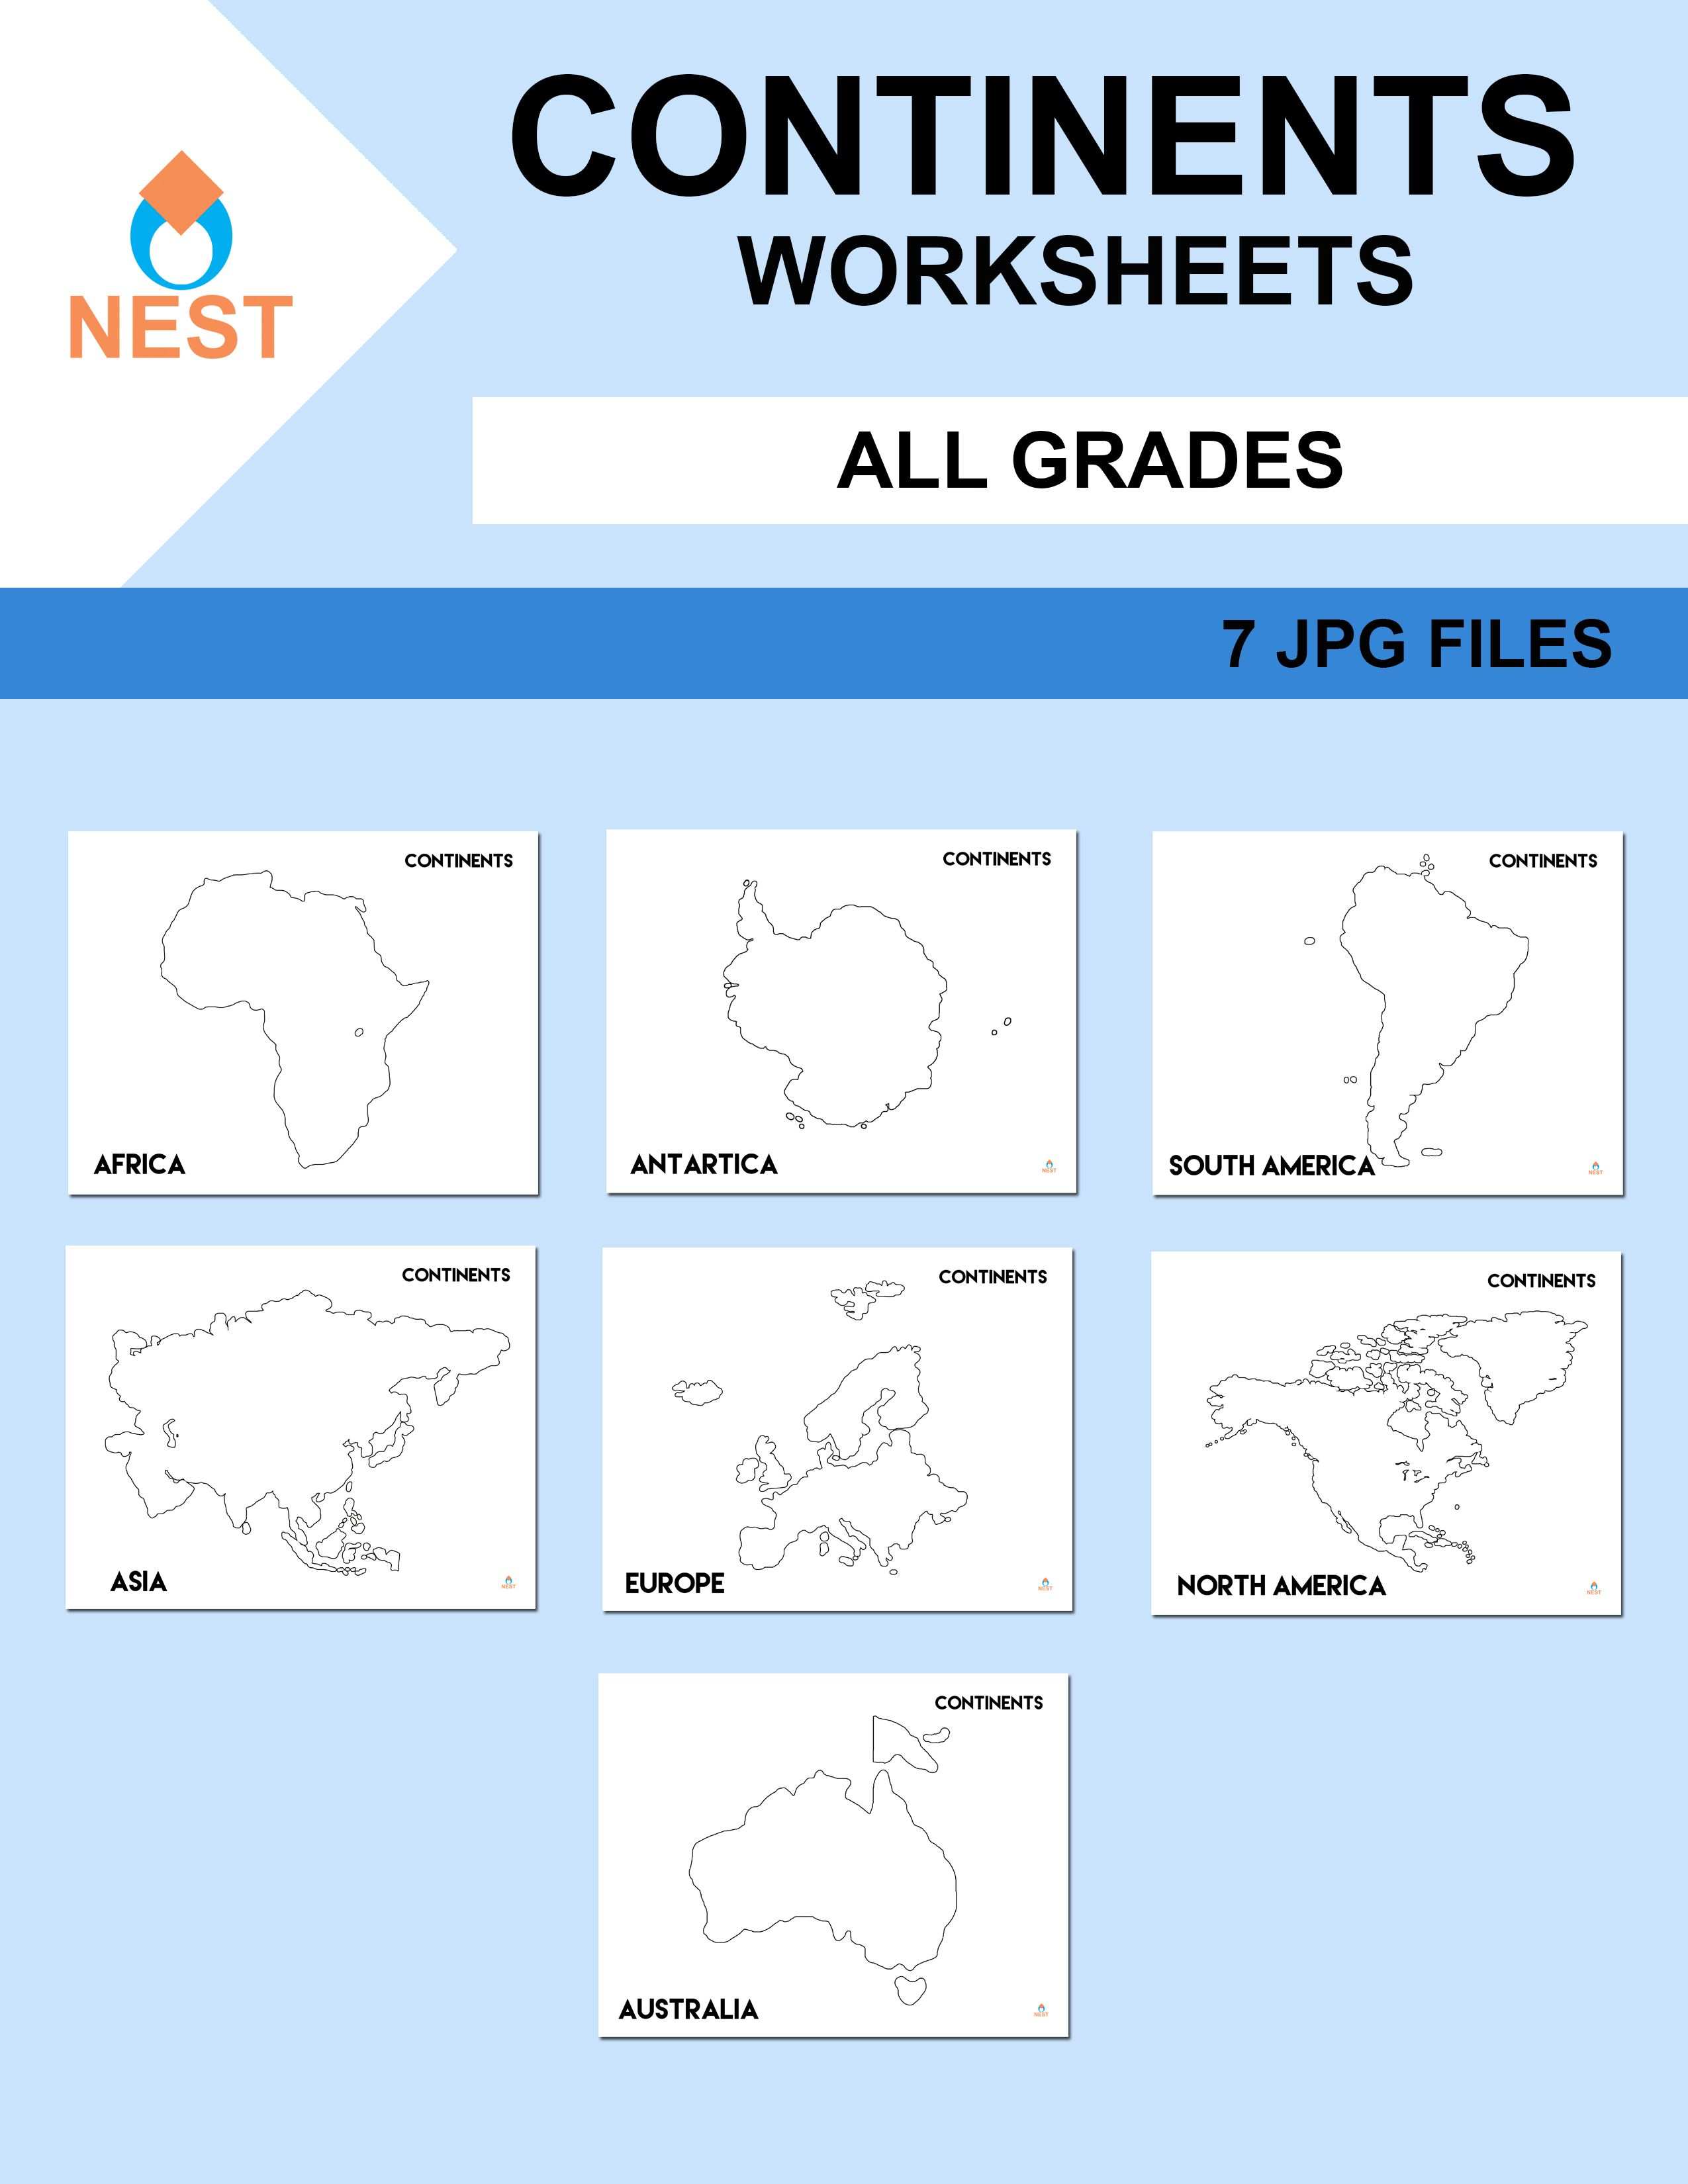 Continents Worksheets Con Imagenes